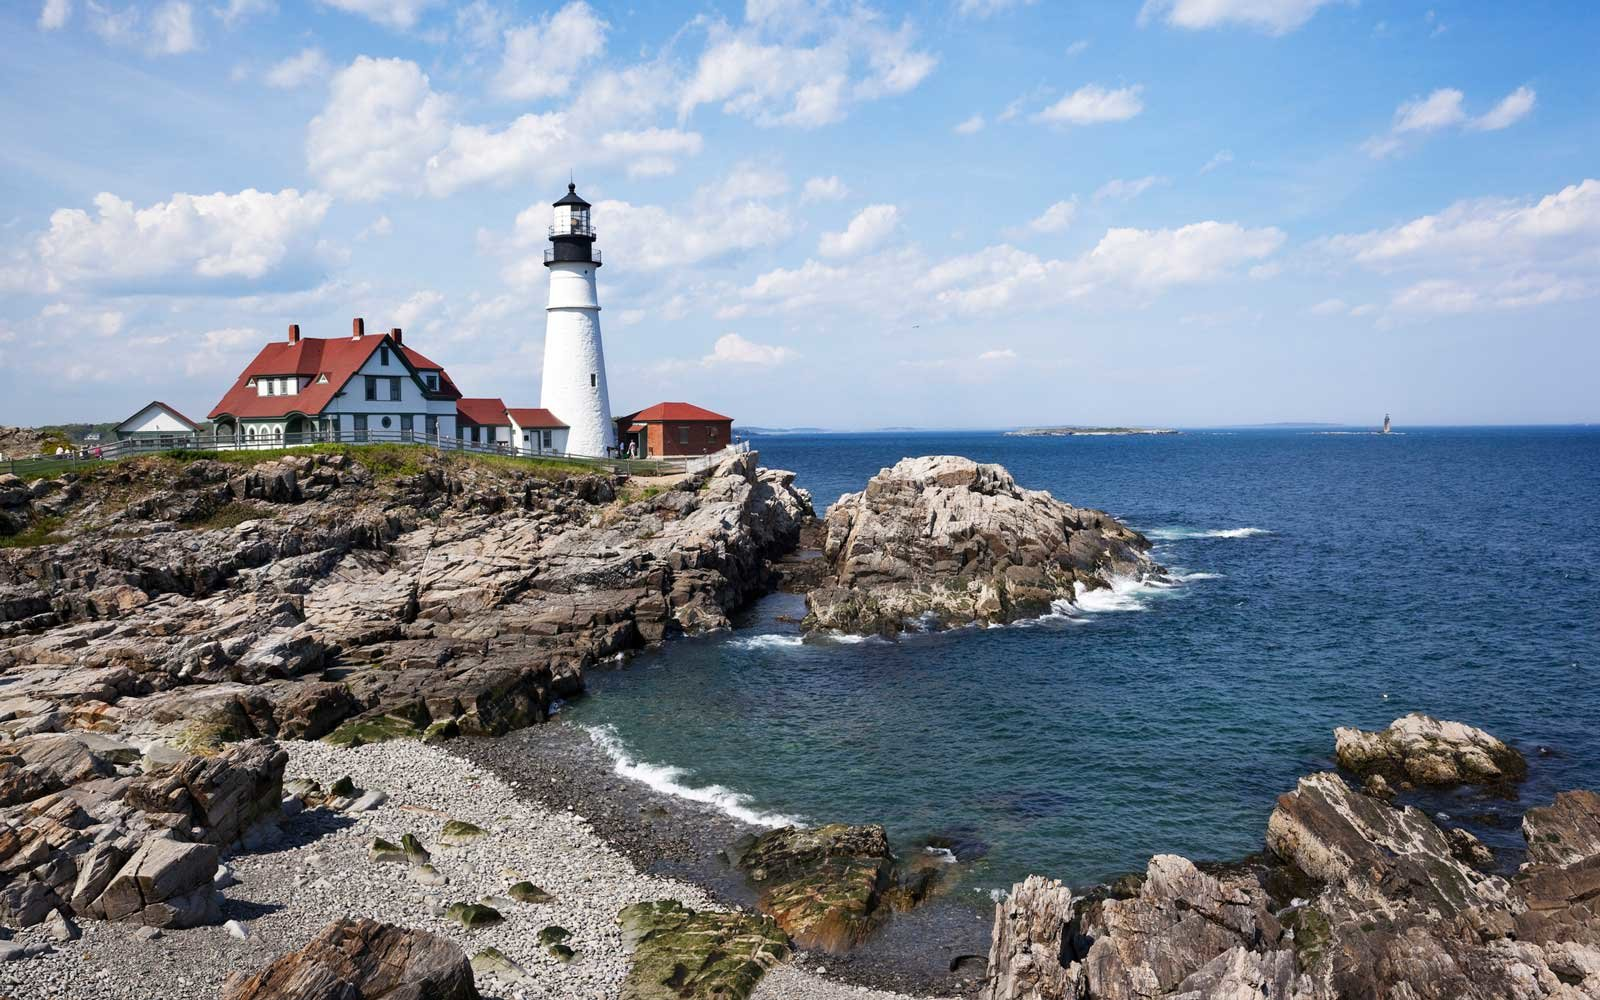 Completed in 1791, Portland Head Light is the oldest lighthouse in Maine and is located in Cape Elizabeth